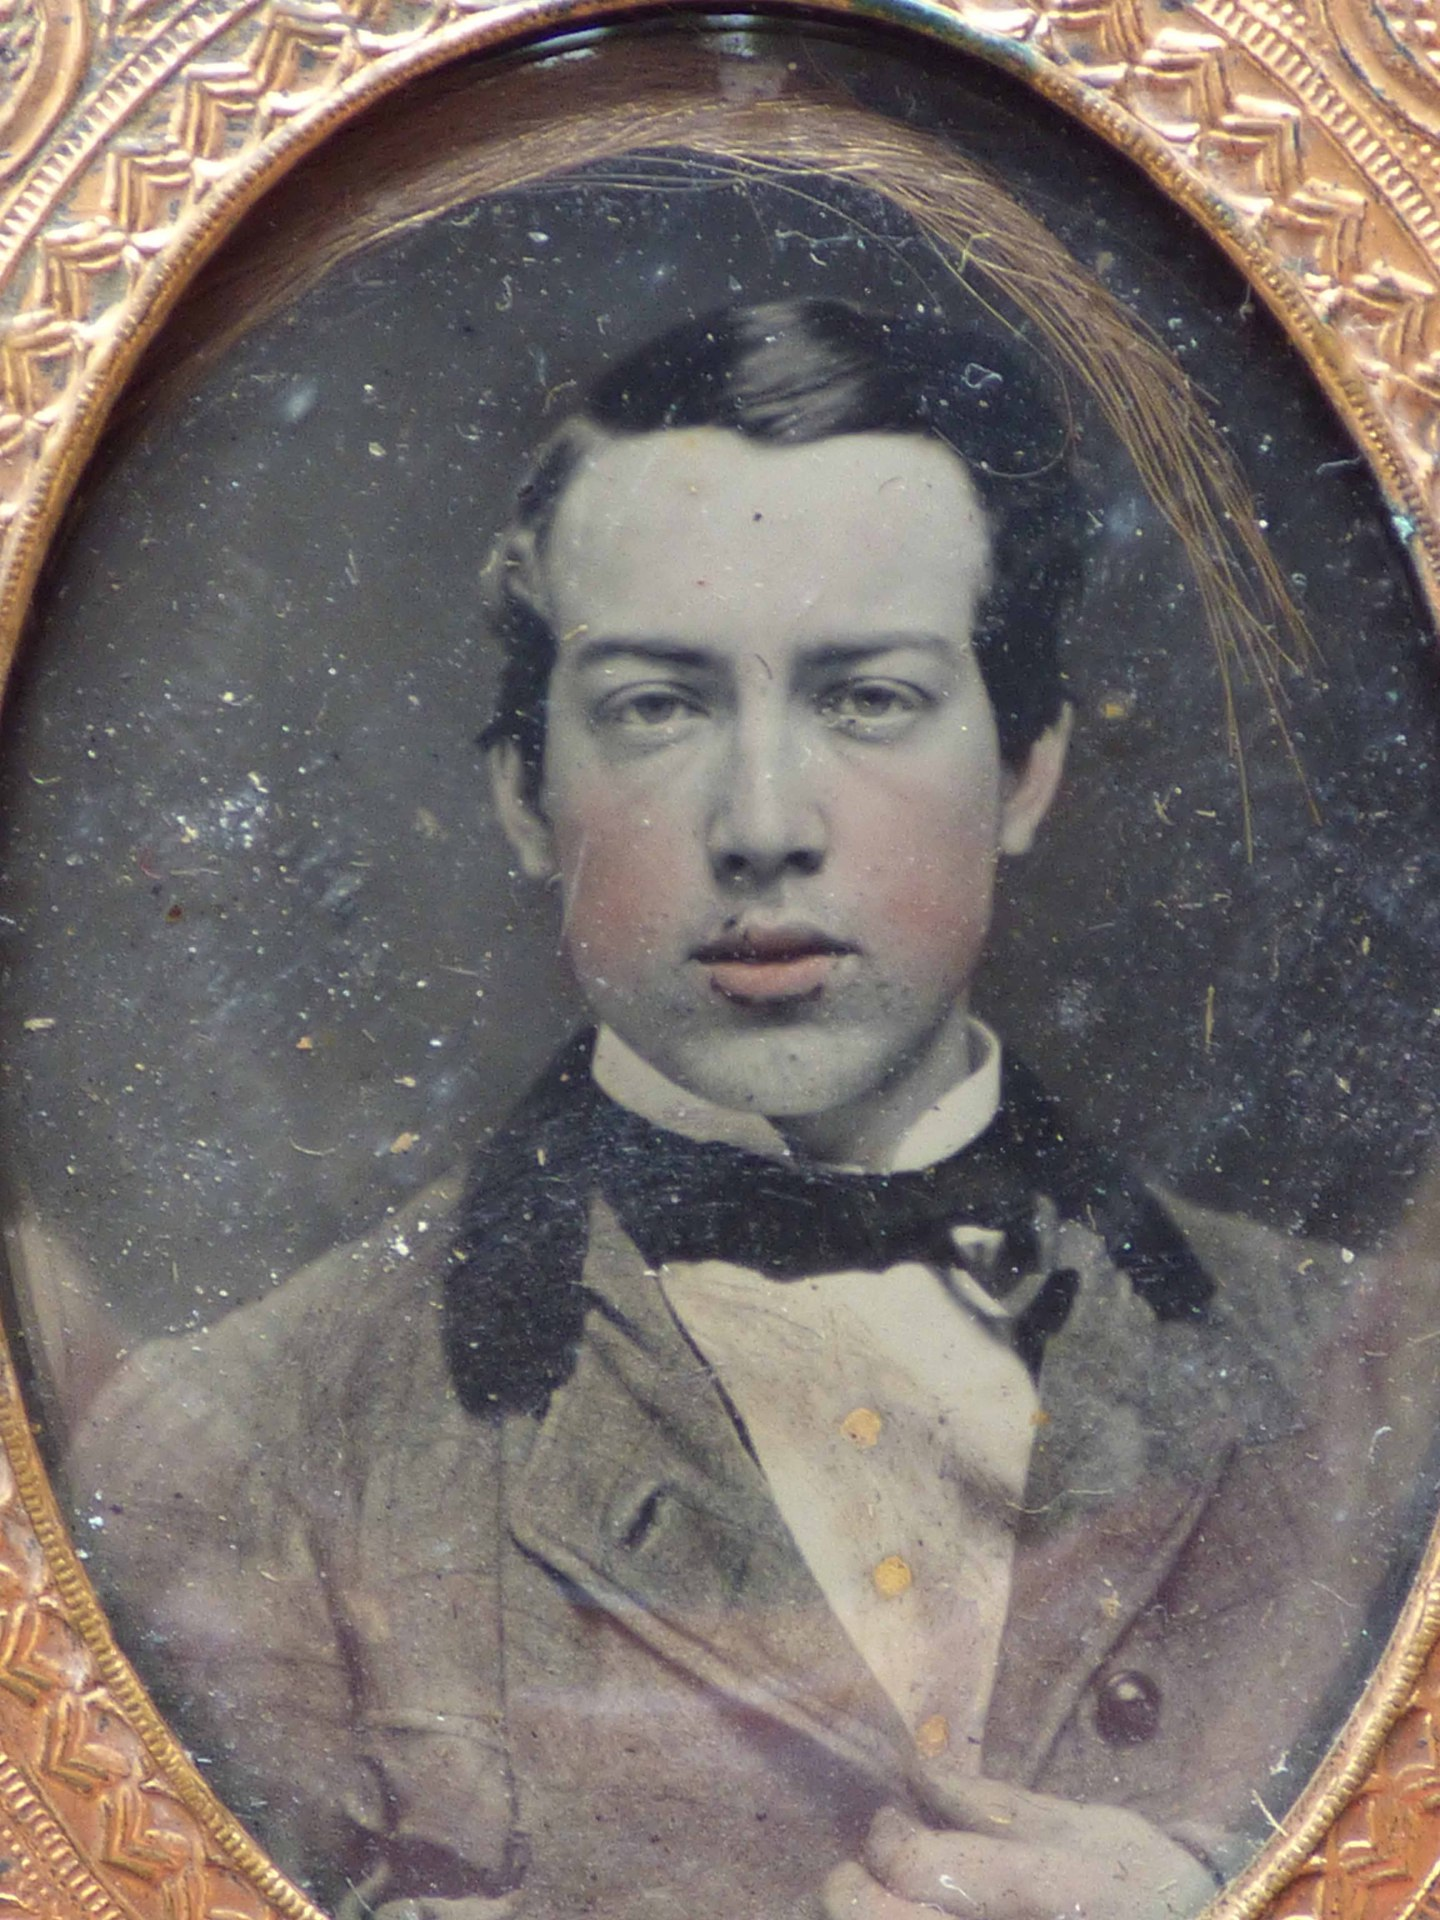 THE MISTERY OF THE CONFEDERATE SOLDIER